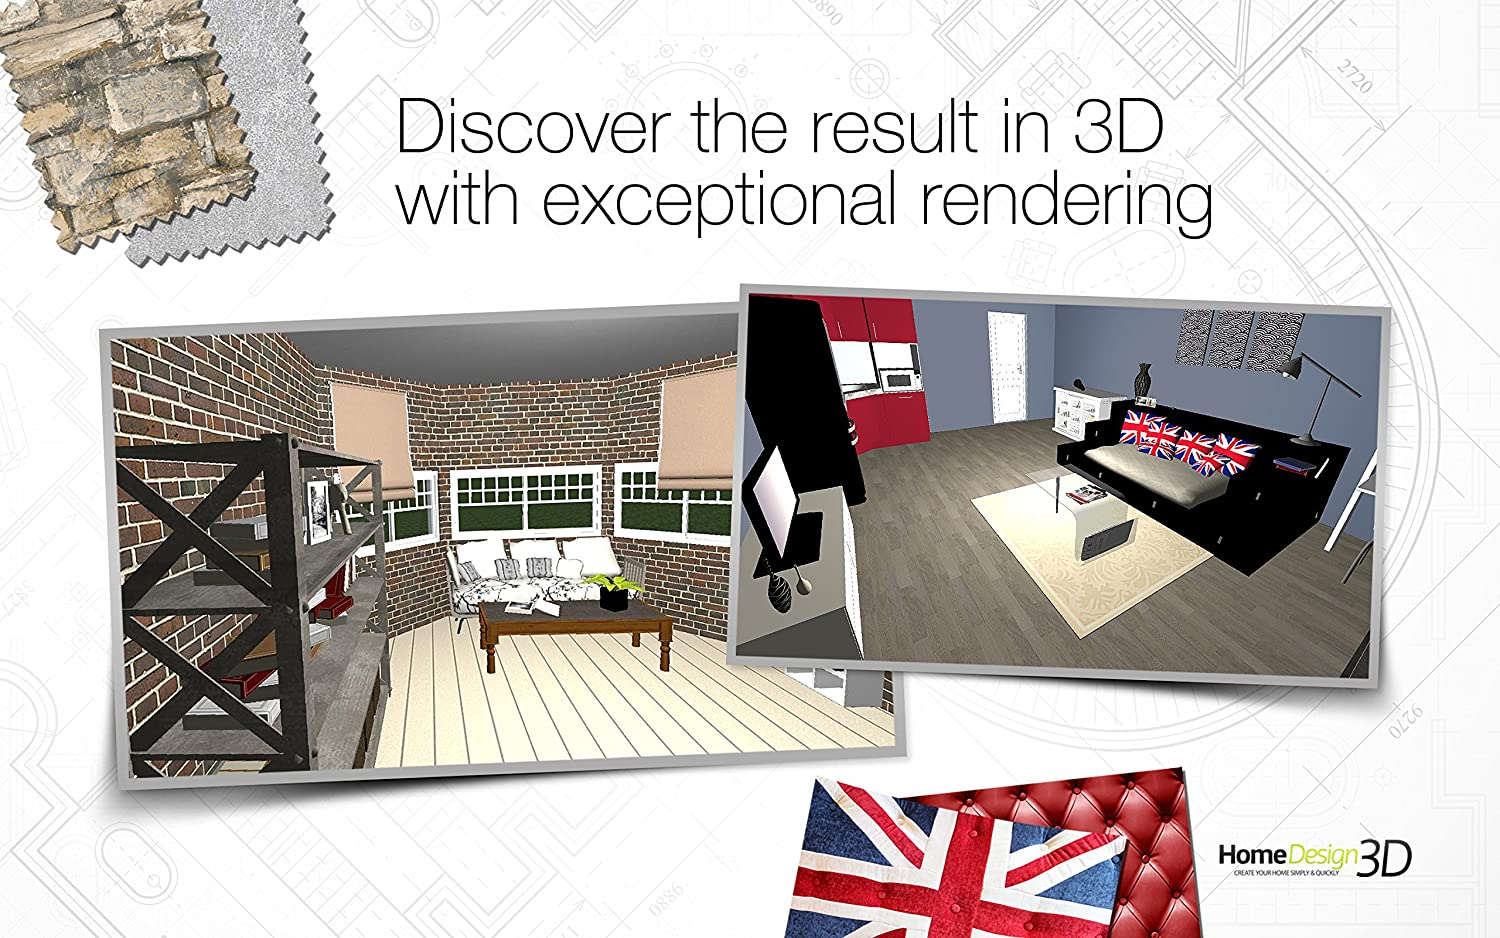 amazoncom home design 3d download software - Download Home Design 3d